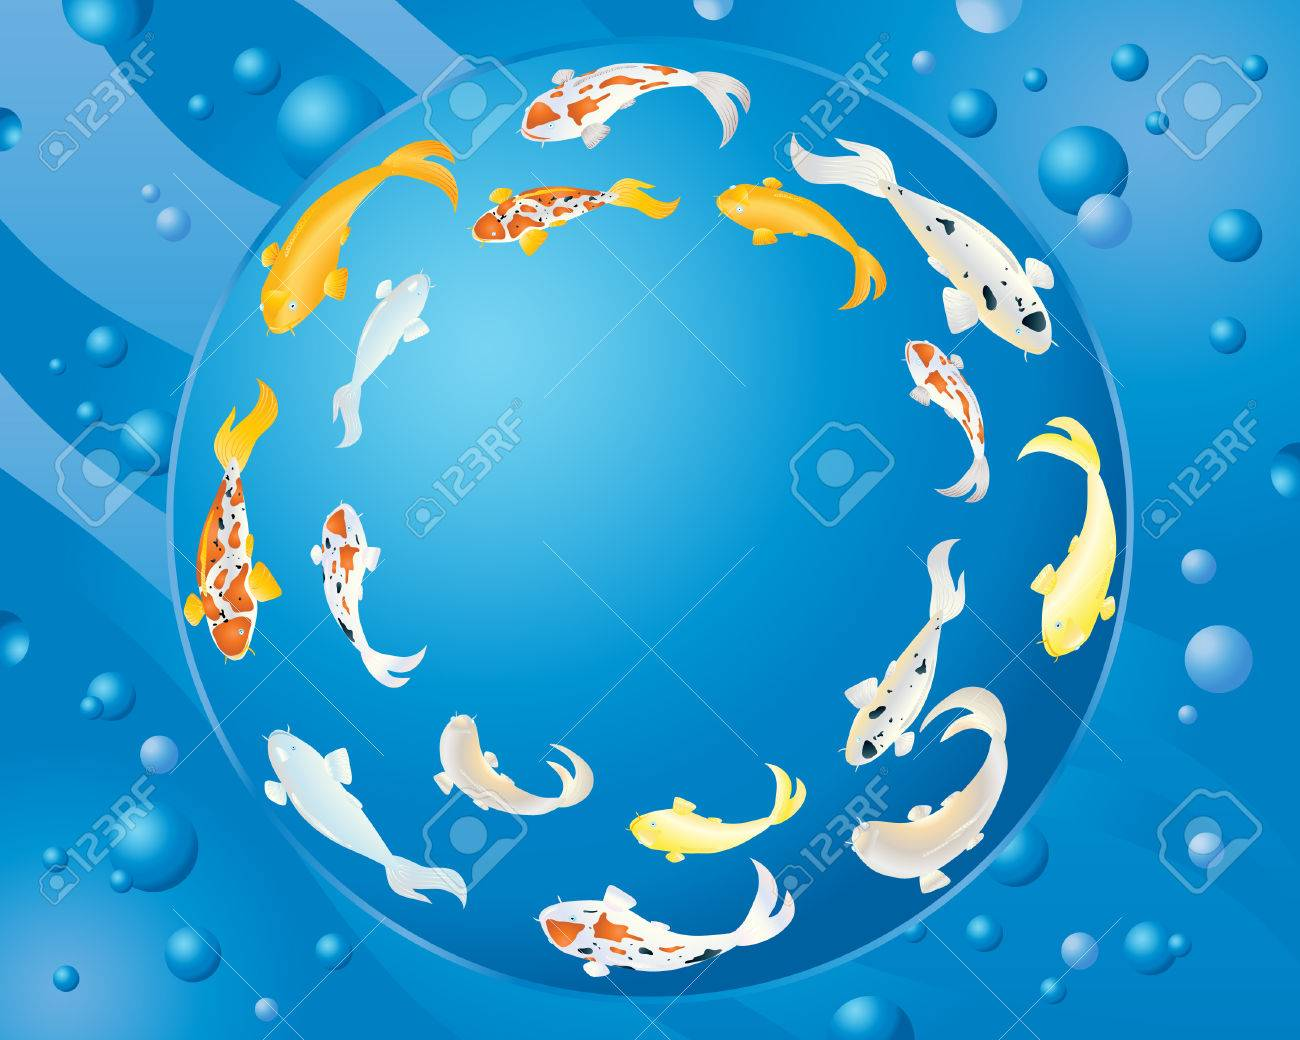 an illustration of colorful koi carp swimming in a circle with blue water and bubbles in the background Stock Vector - 9054192